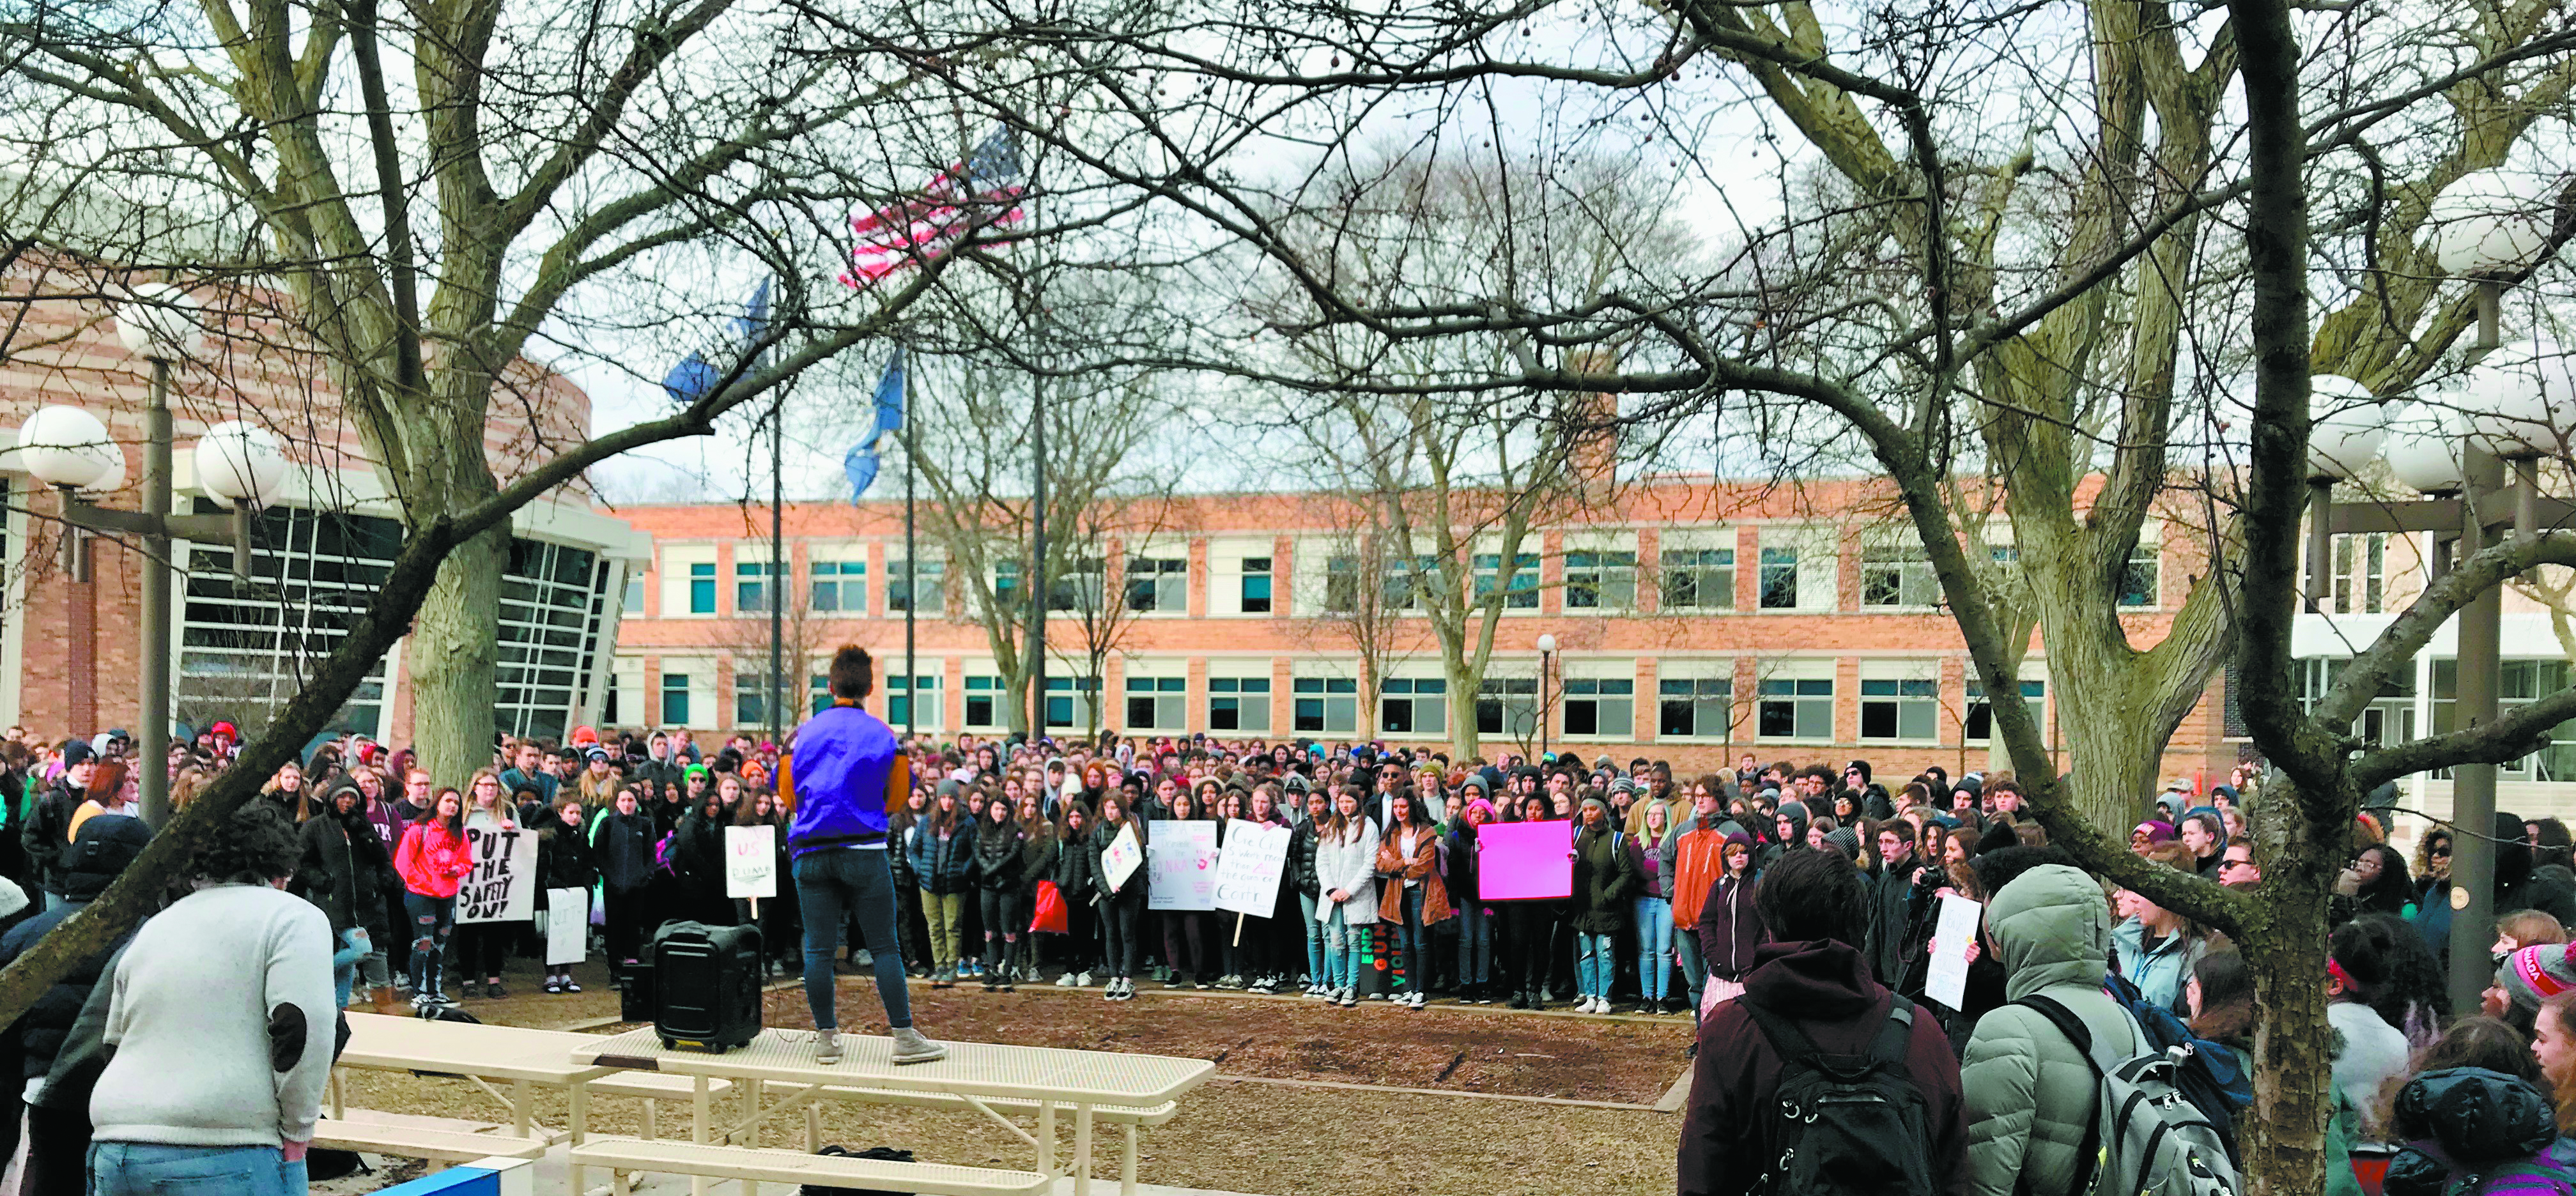 About 300 students gathered in the courtyard at Berkley High School during the walkout March 14 in solidarity with Marjory Stoneman Douglas High School in Parkland, Fla.